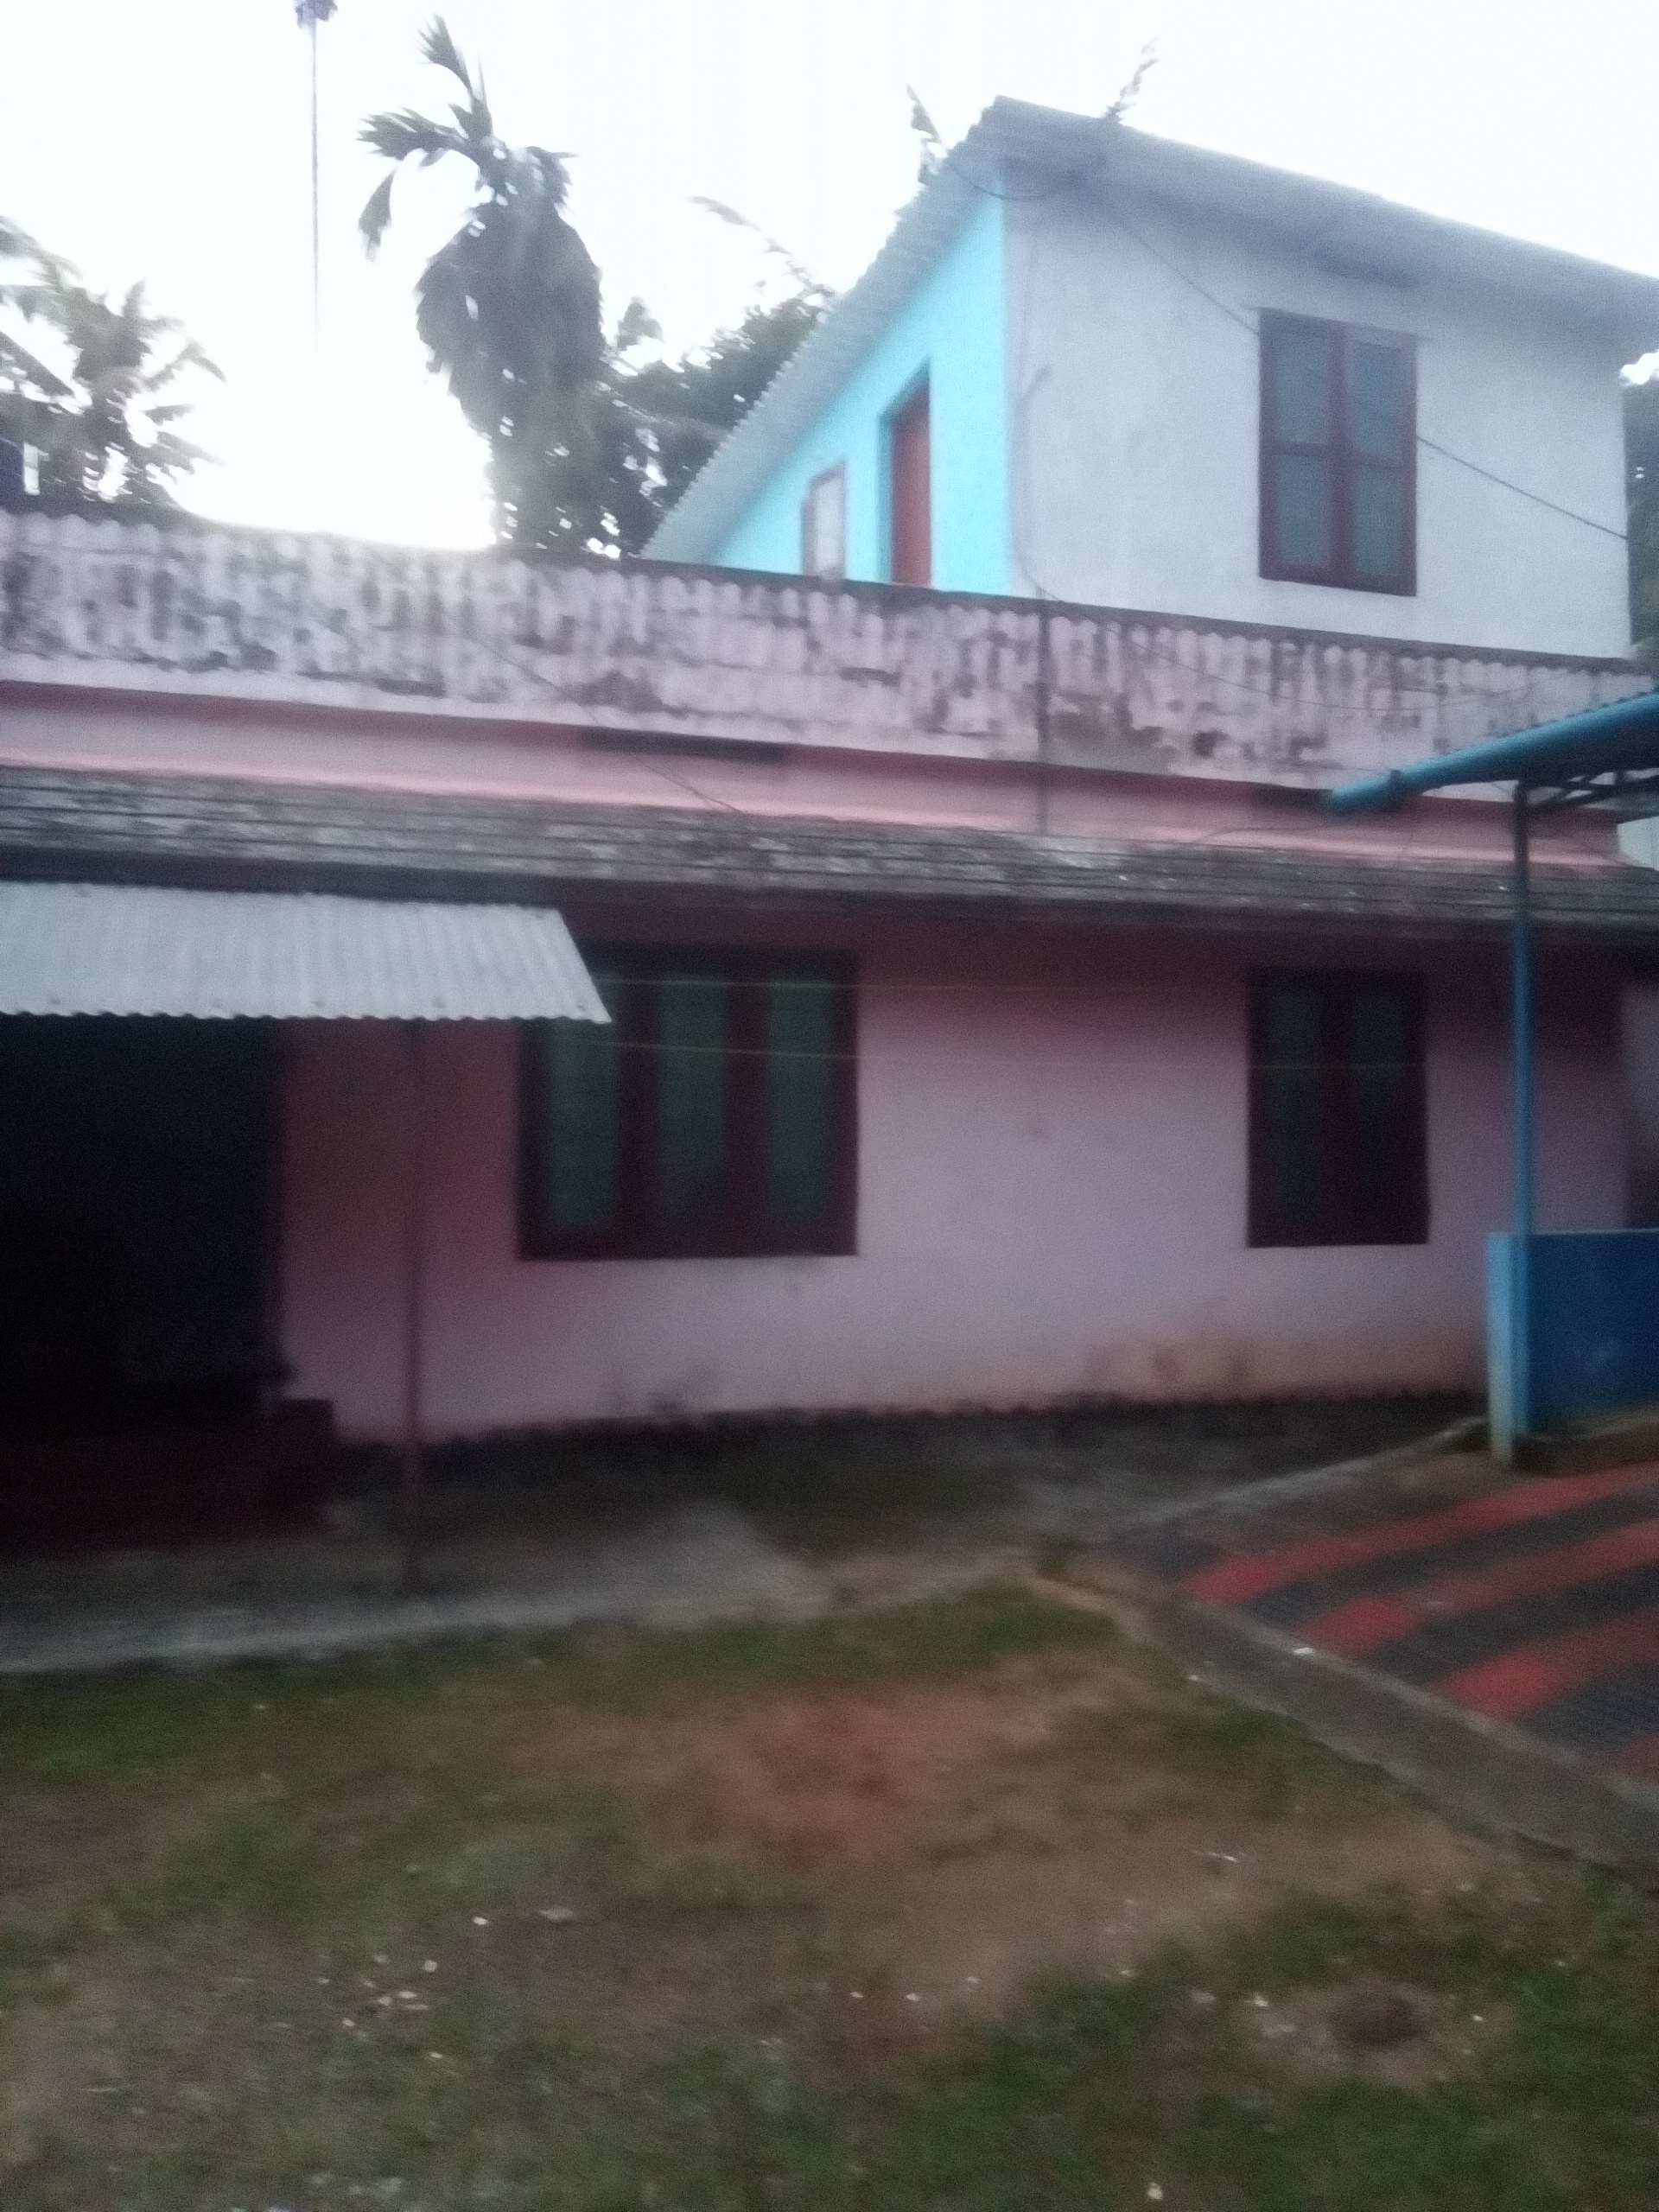 House for selling konni, Pathanamthitta